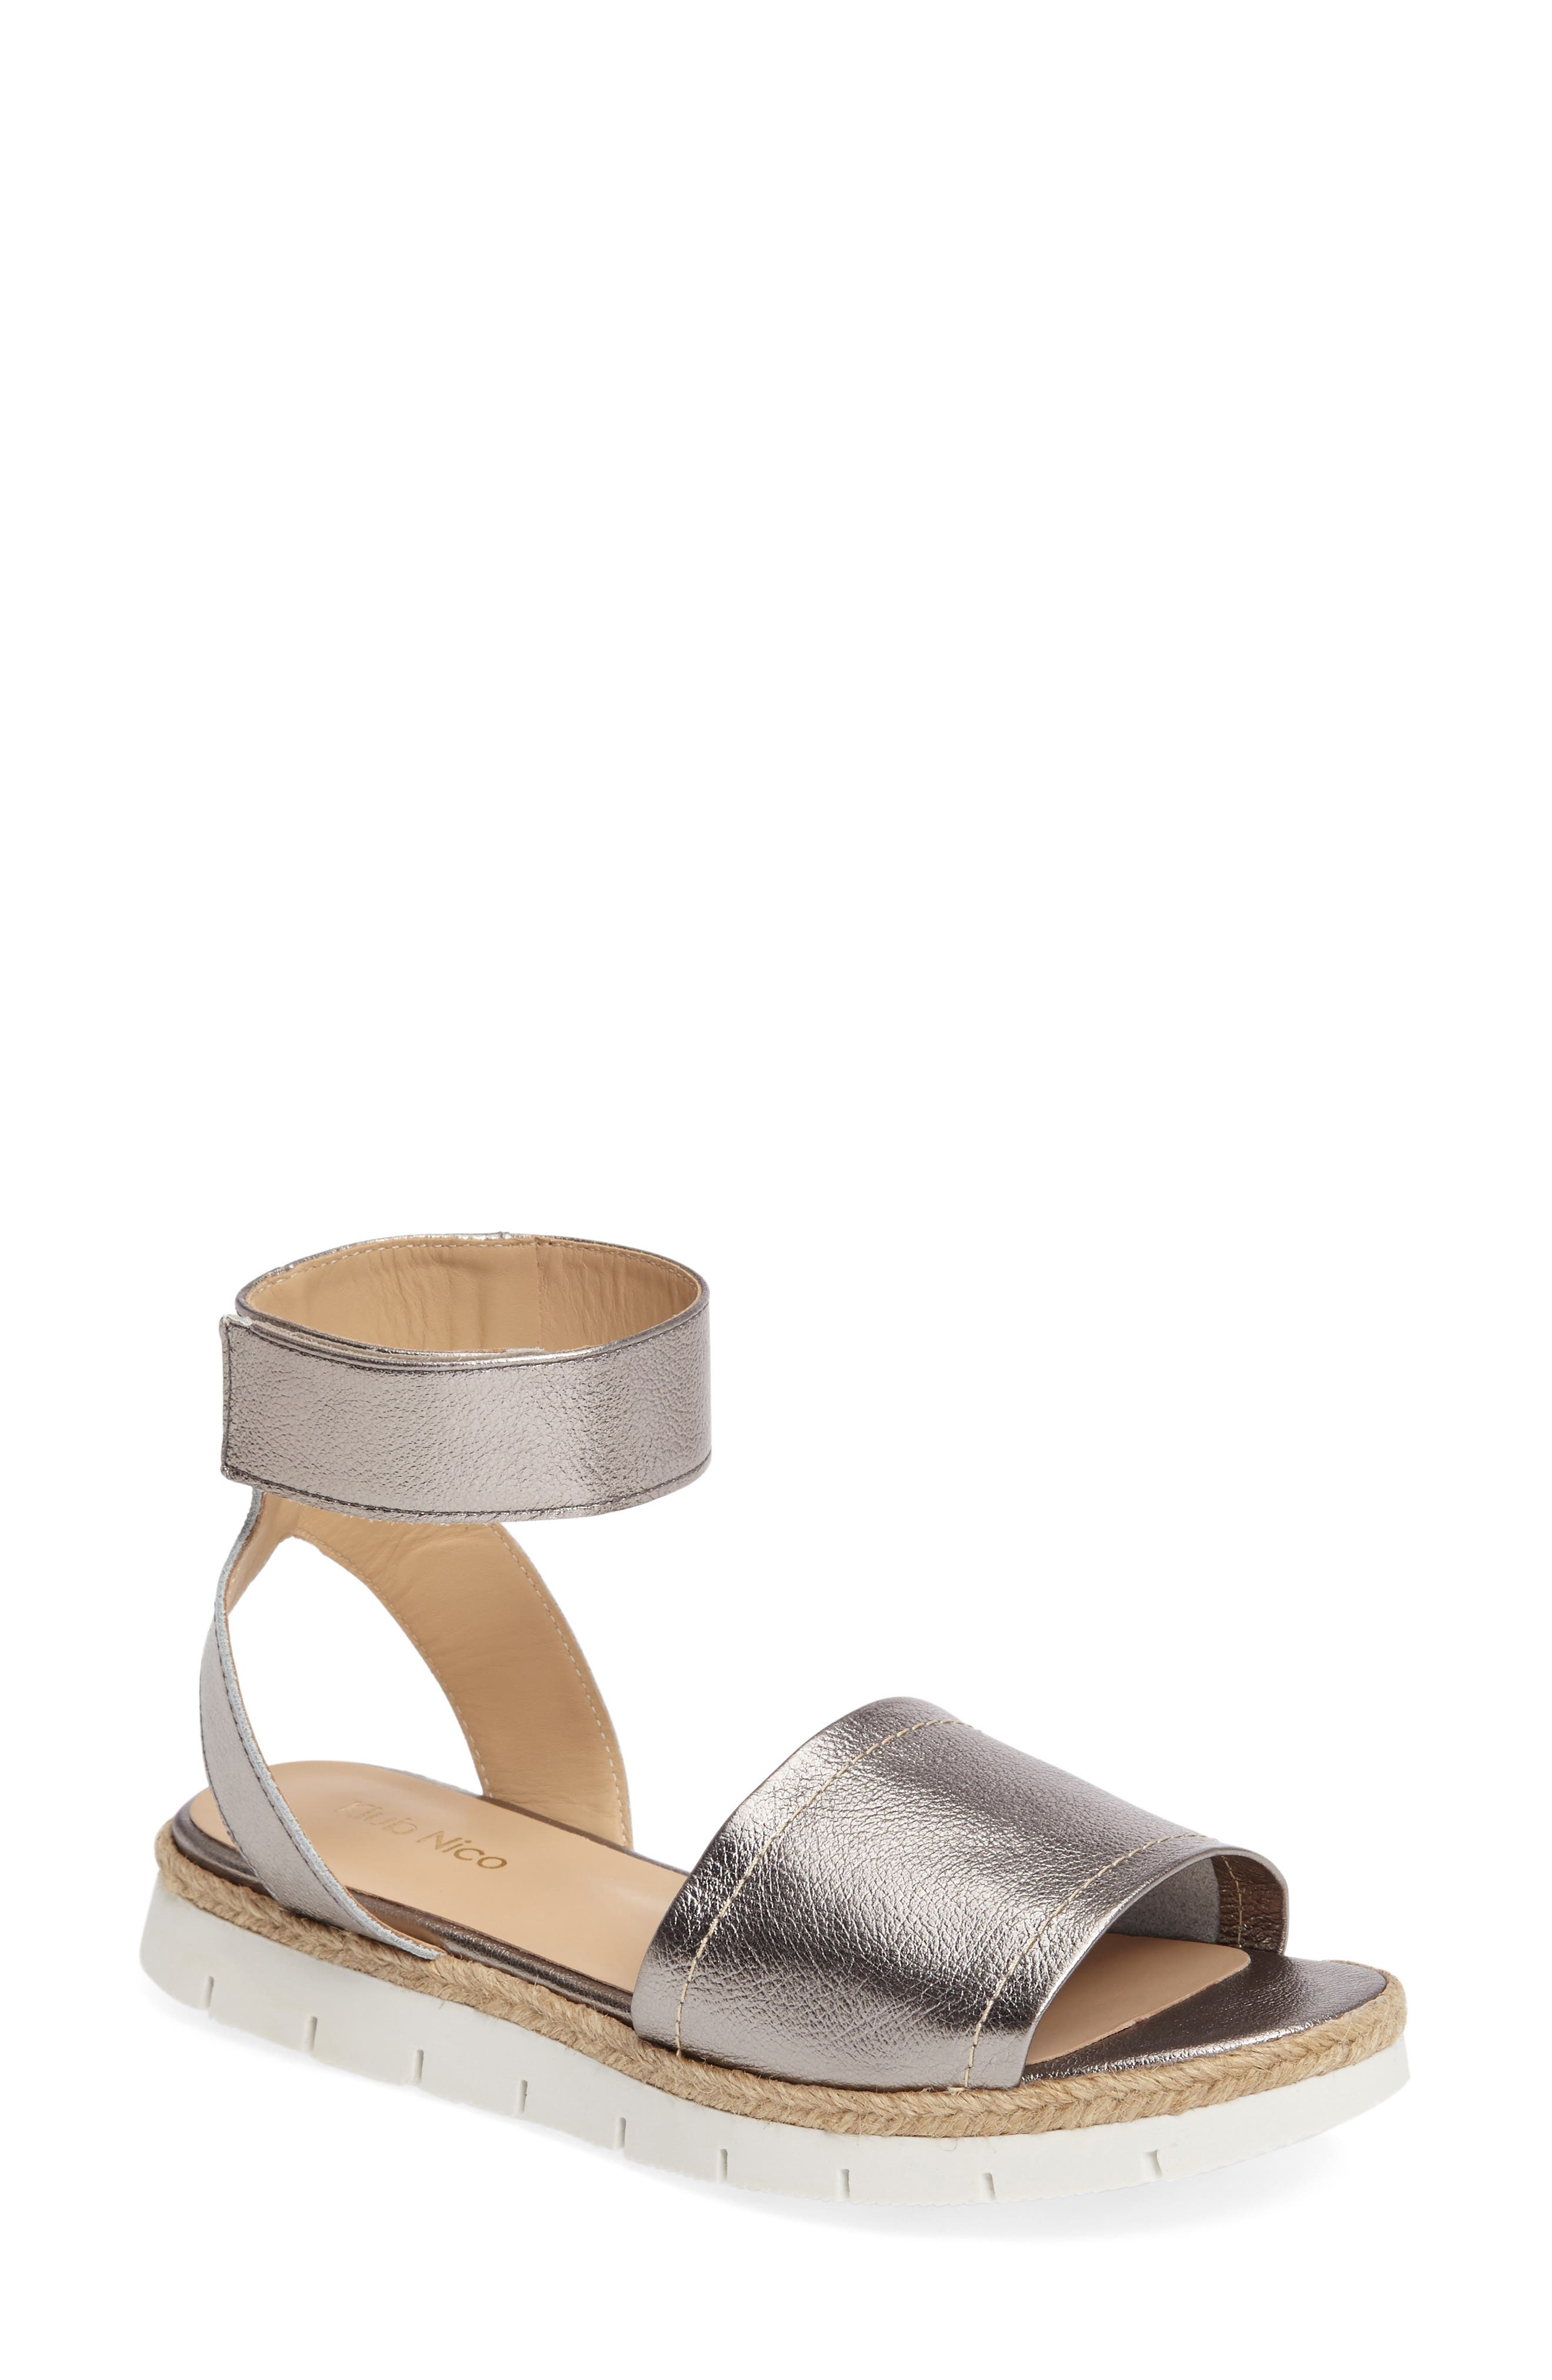 Cleo Platform Sandal,                         Main,                         color, 021